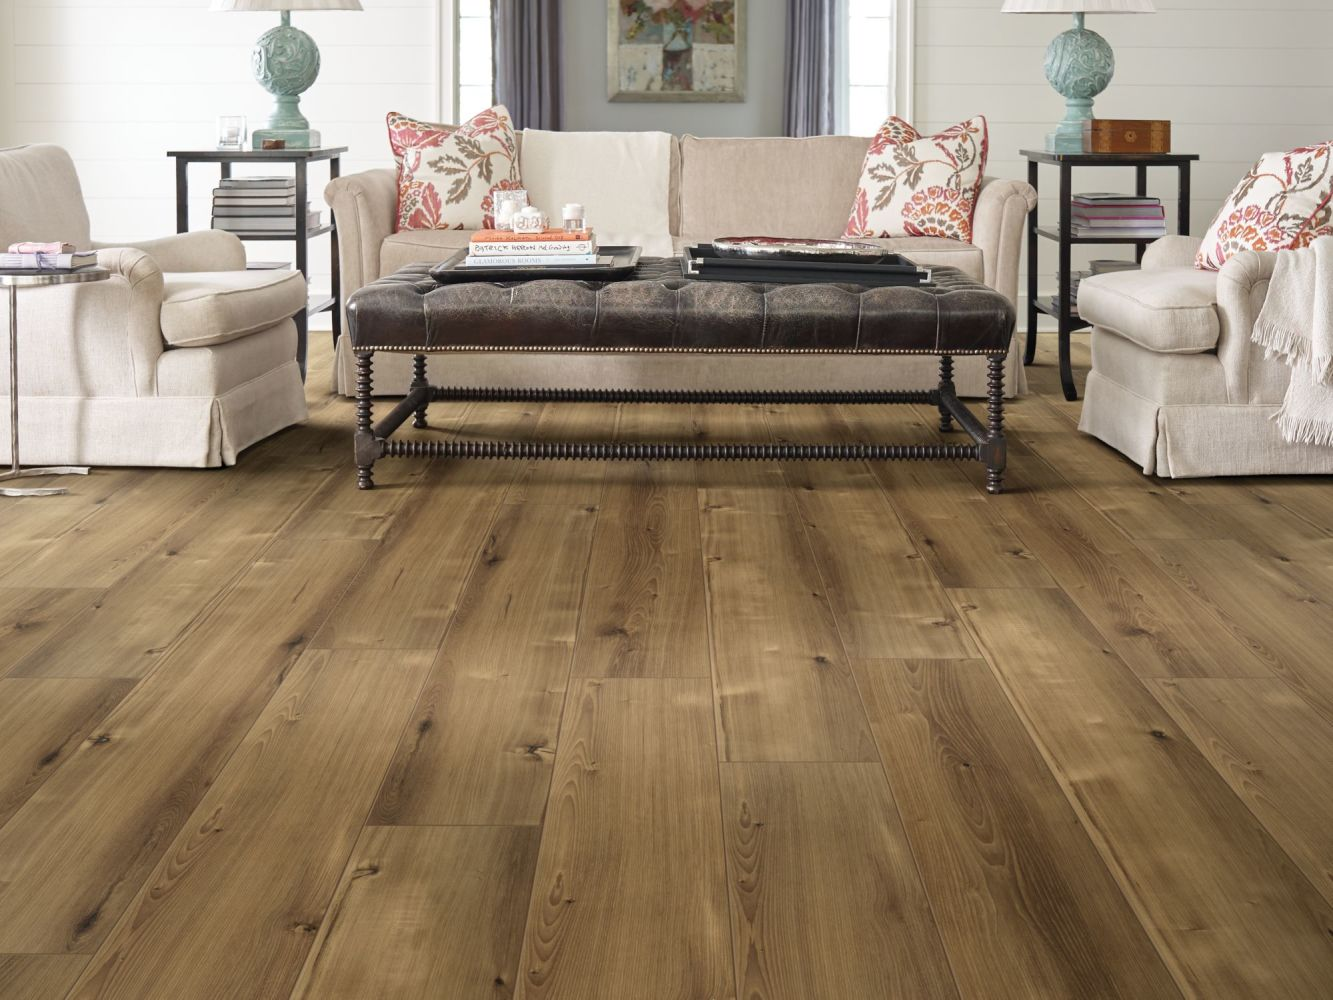 Shaw Floors Resilient Residential Allegiance+ Accent Barnwell Hickory 06000_2008V